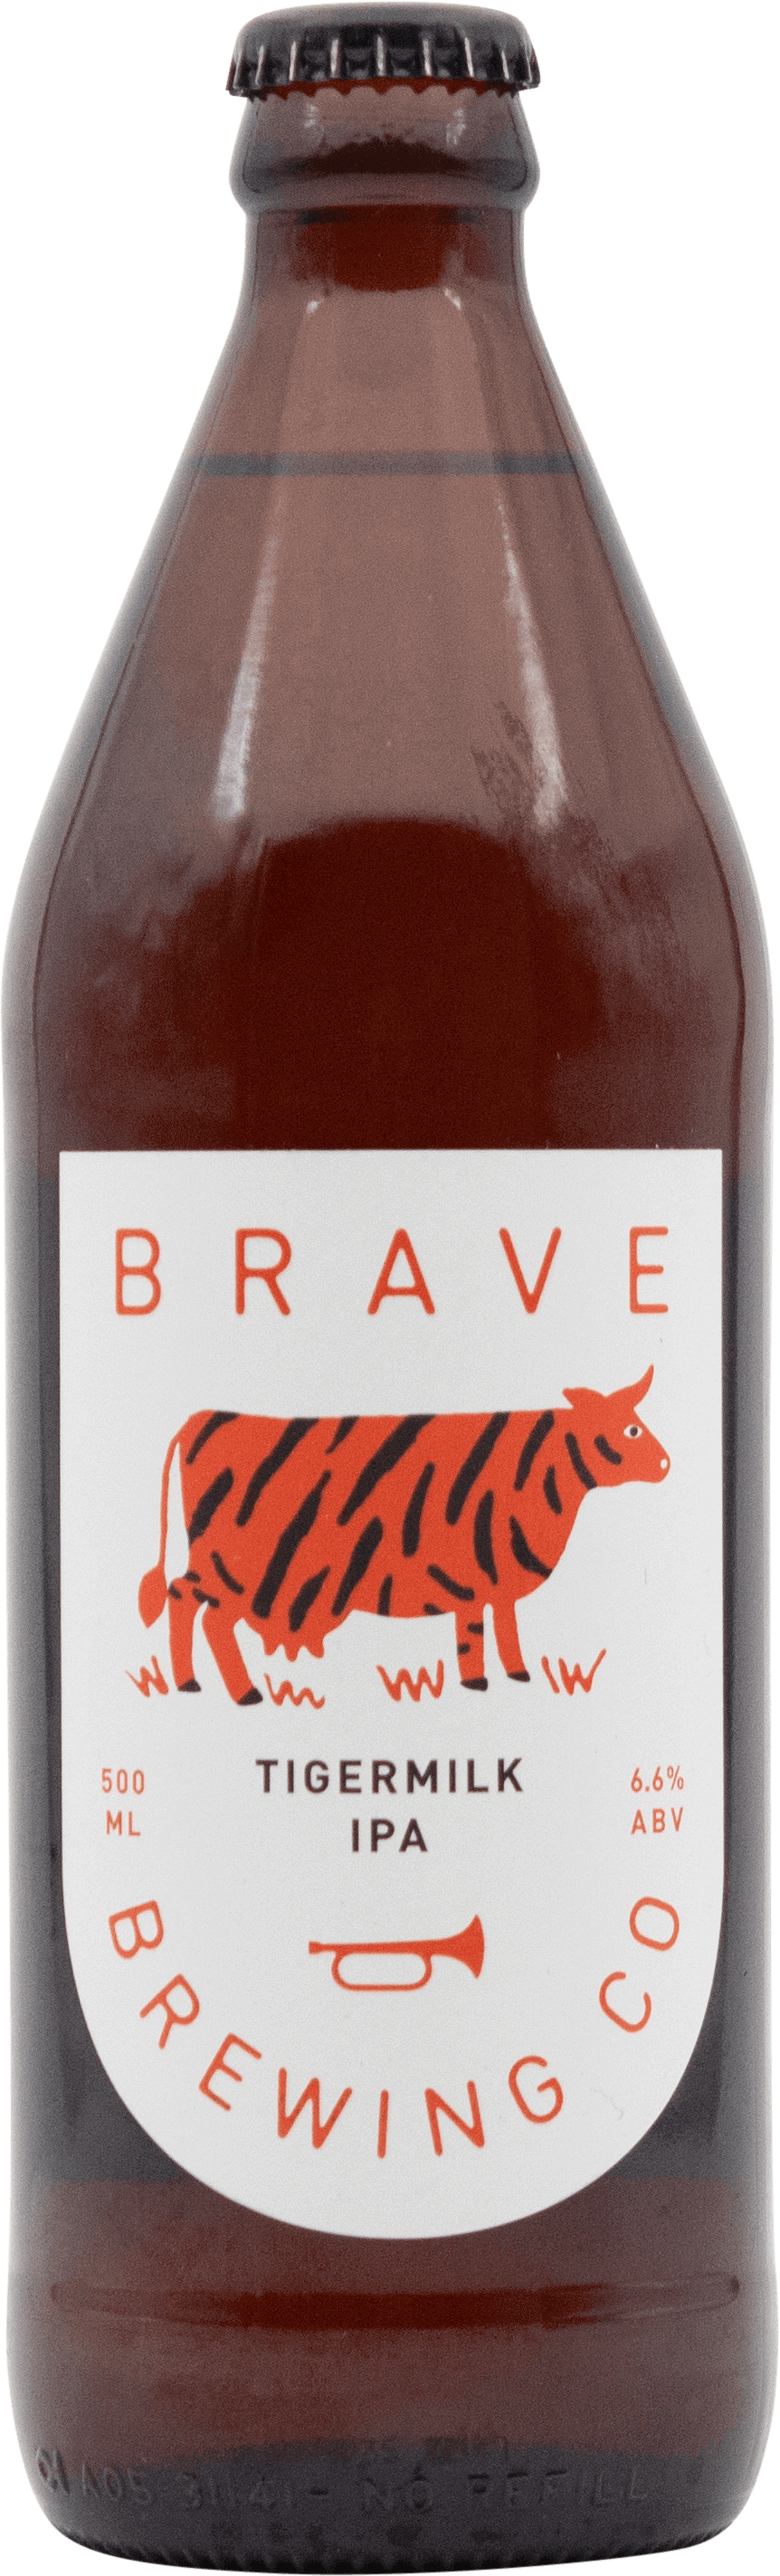 Brave Brewing Tigermilk IPA